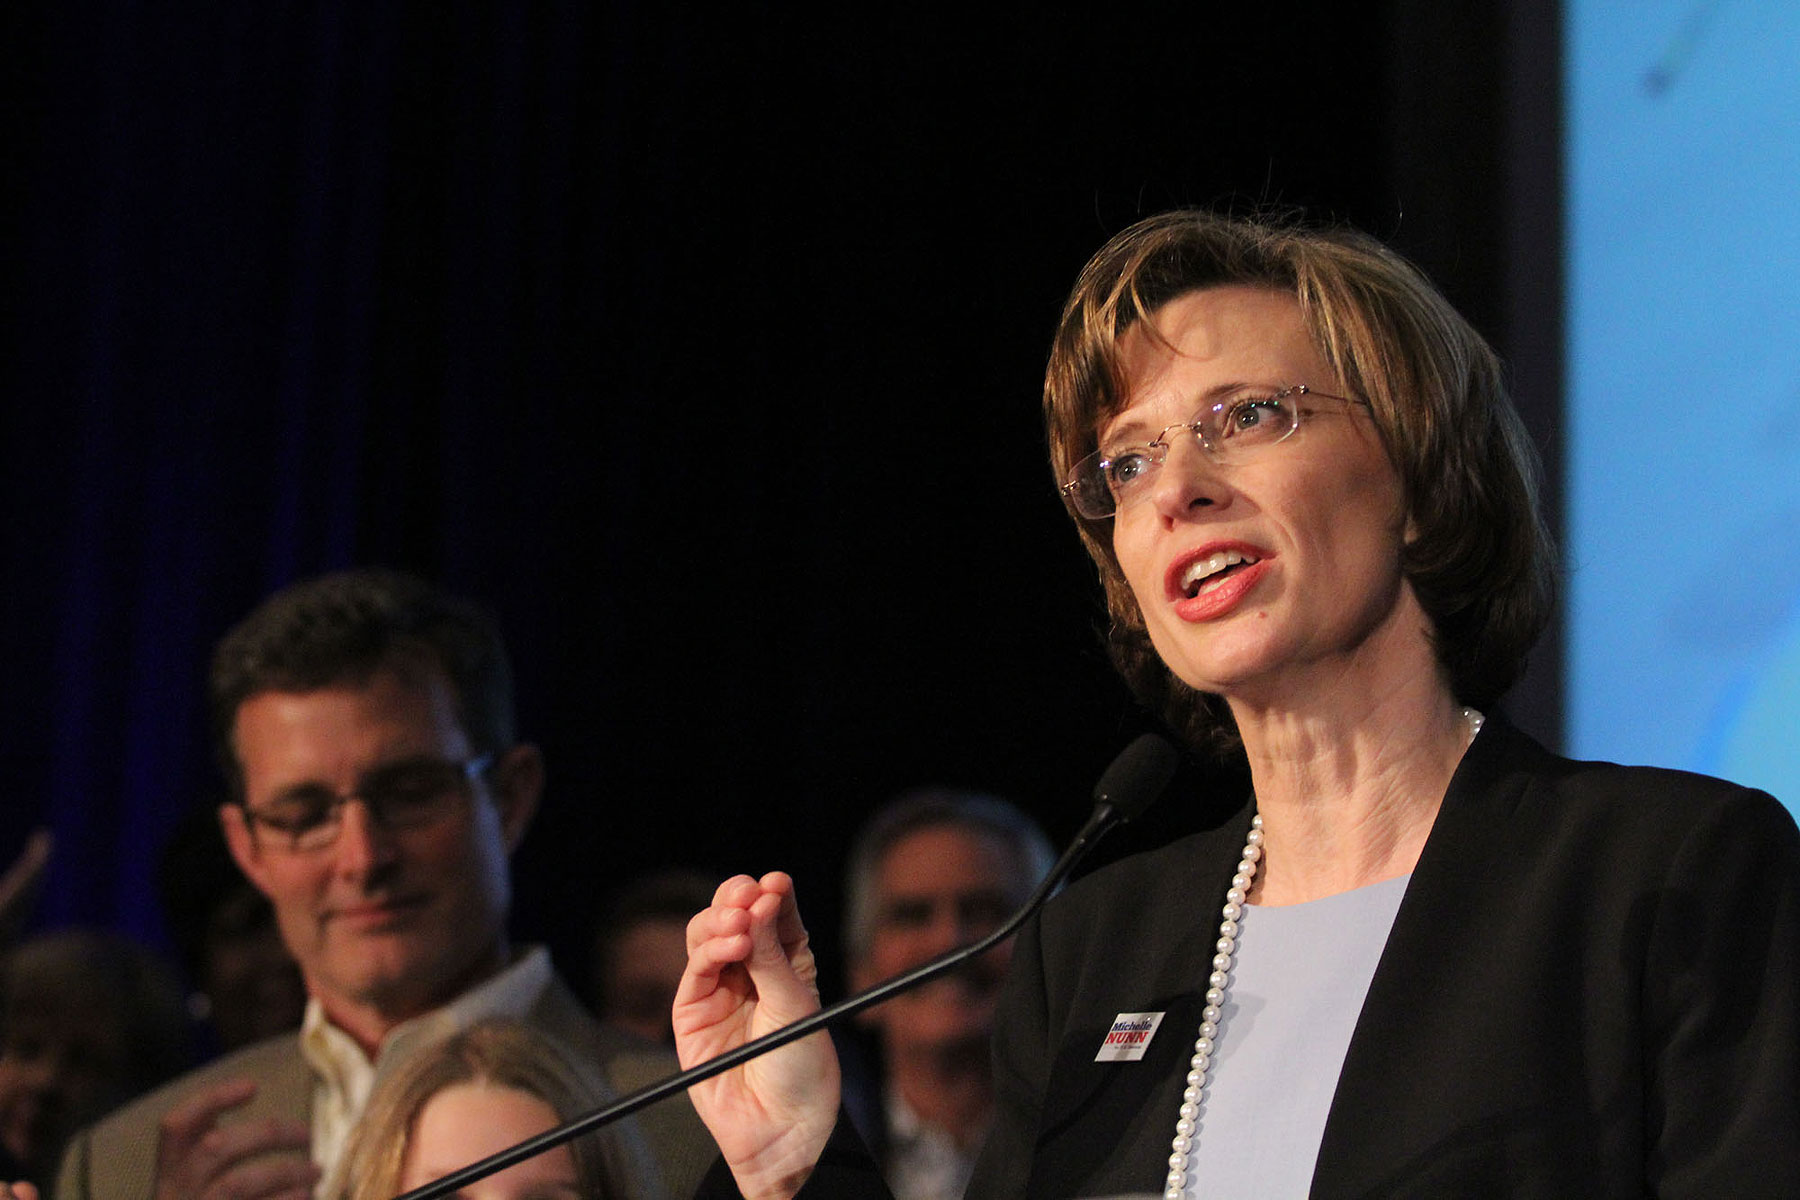 Michelle Nunn speaks to her supporters after winning the Democratic primary for Georgia Senate on May 20, 2014.